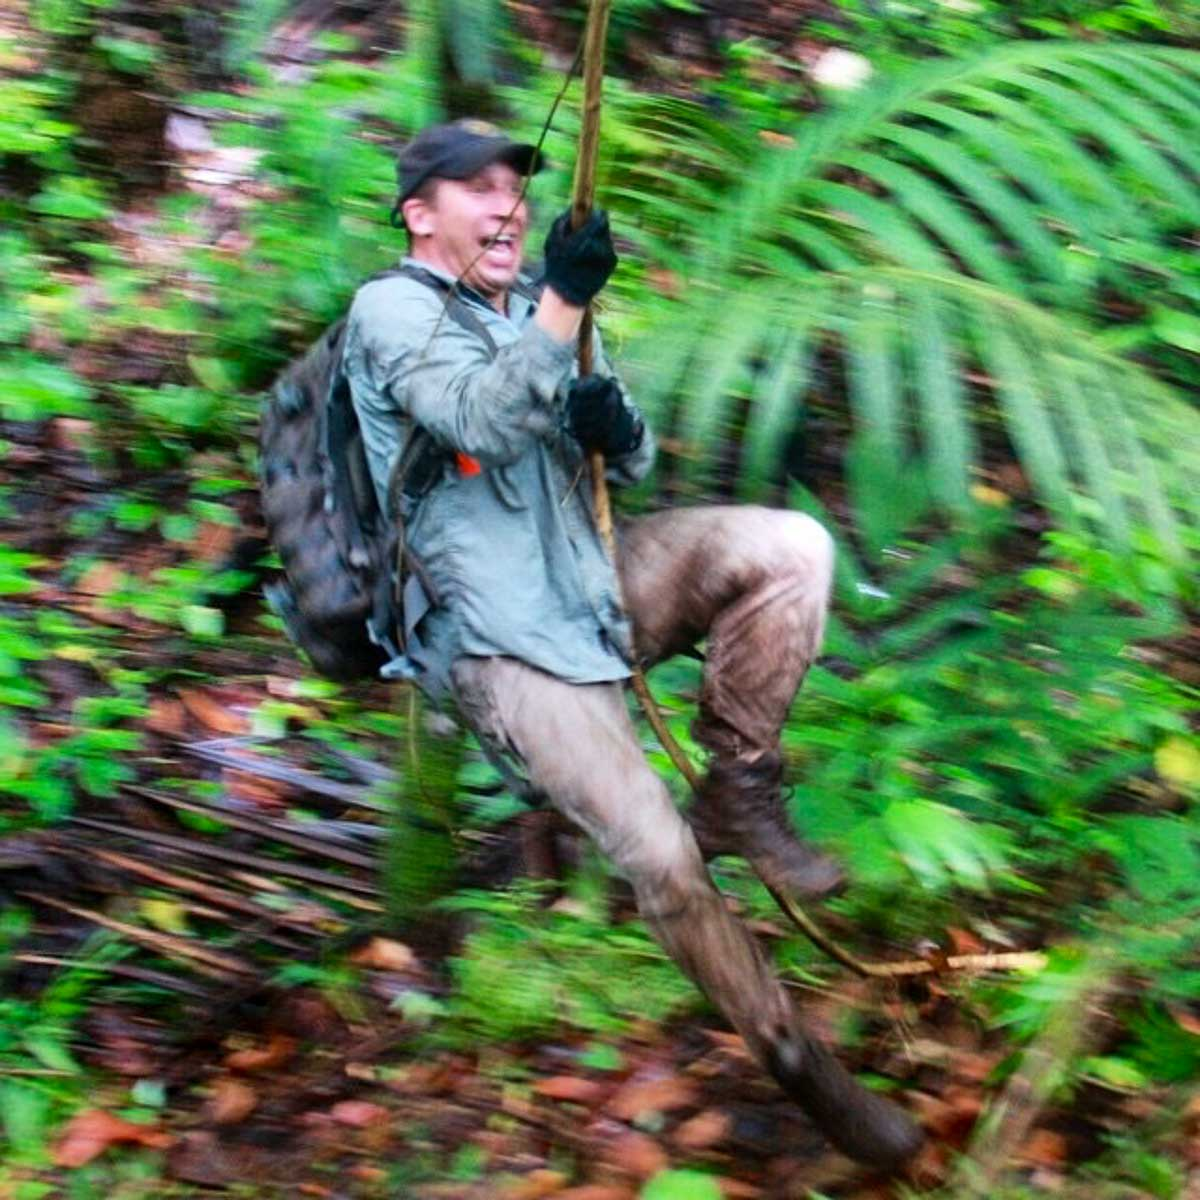 Derek Abbey, Ph.D. Swinging on vine in jungle